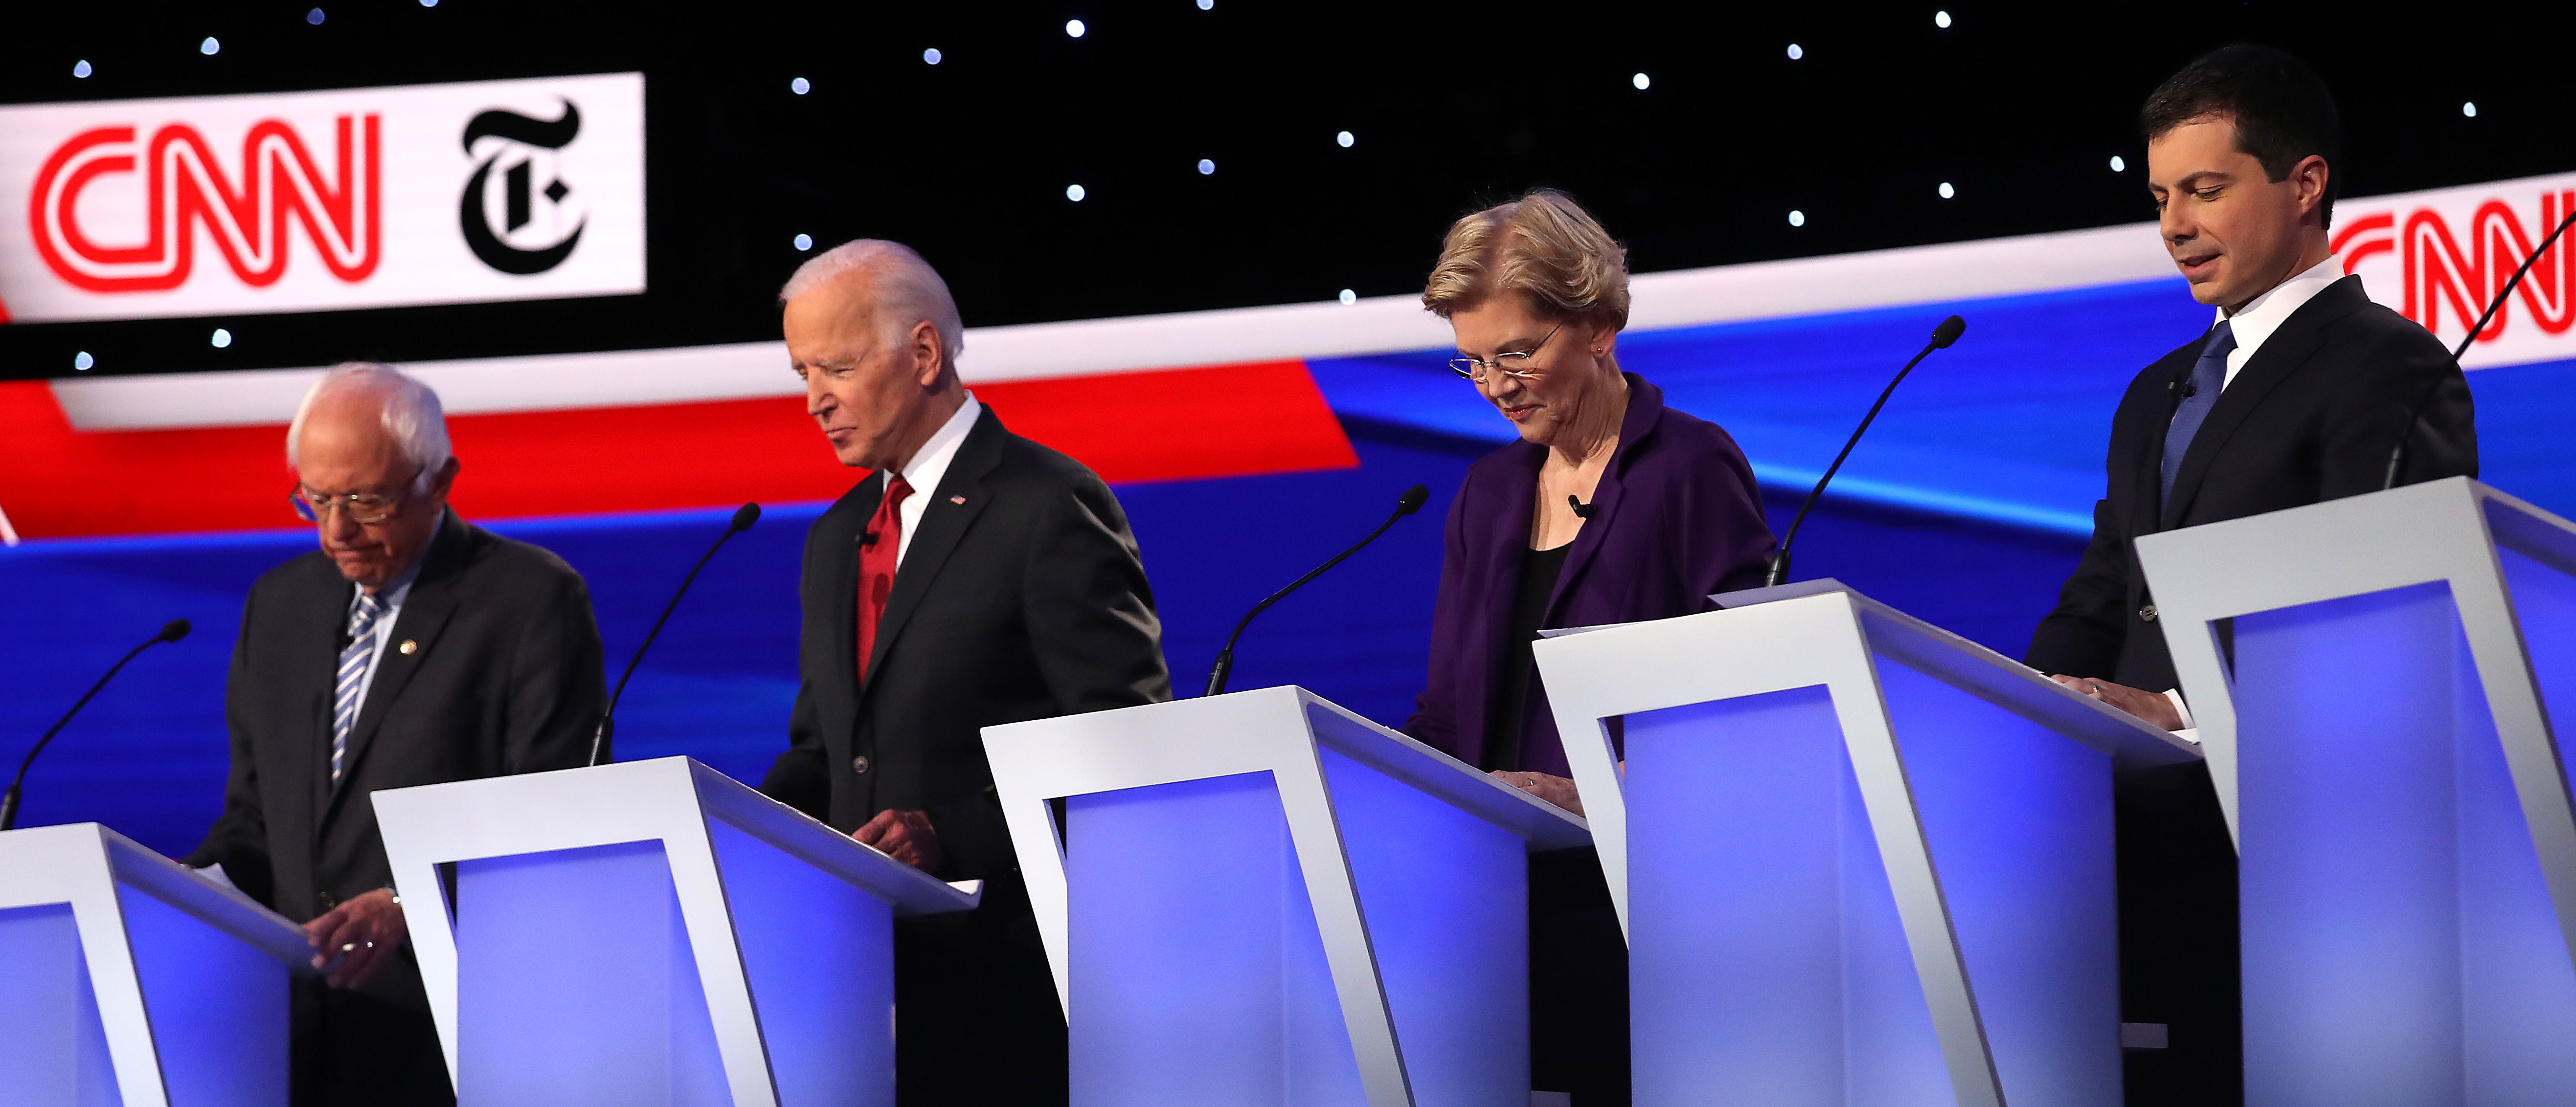 Ratings For The Fourth Democratic Debate Are In